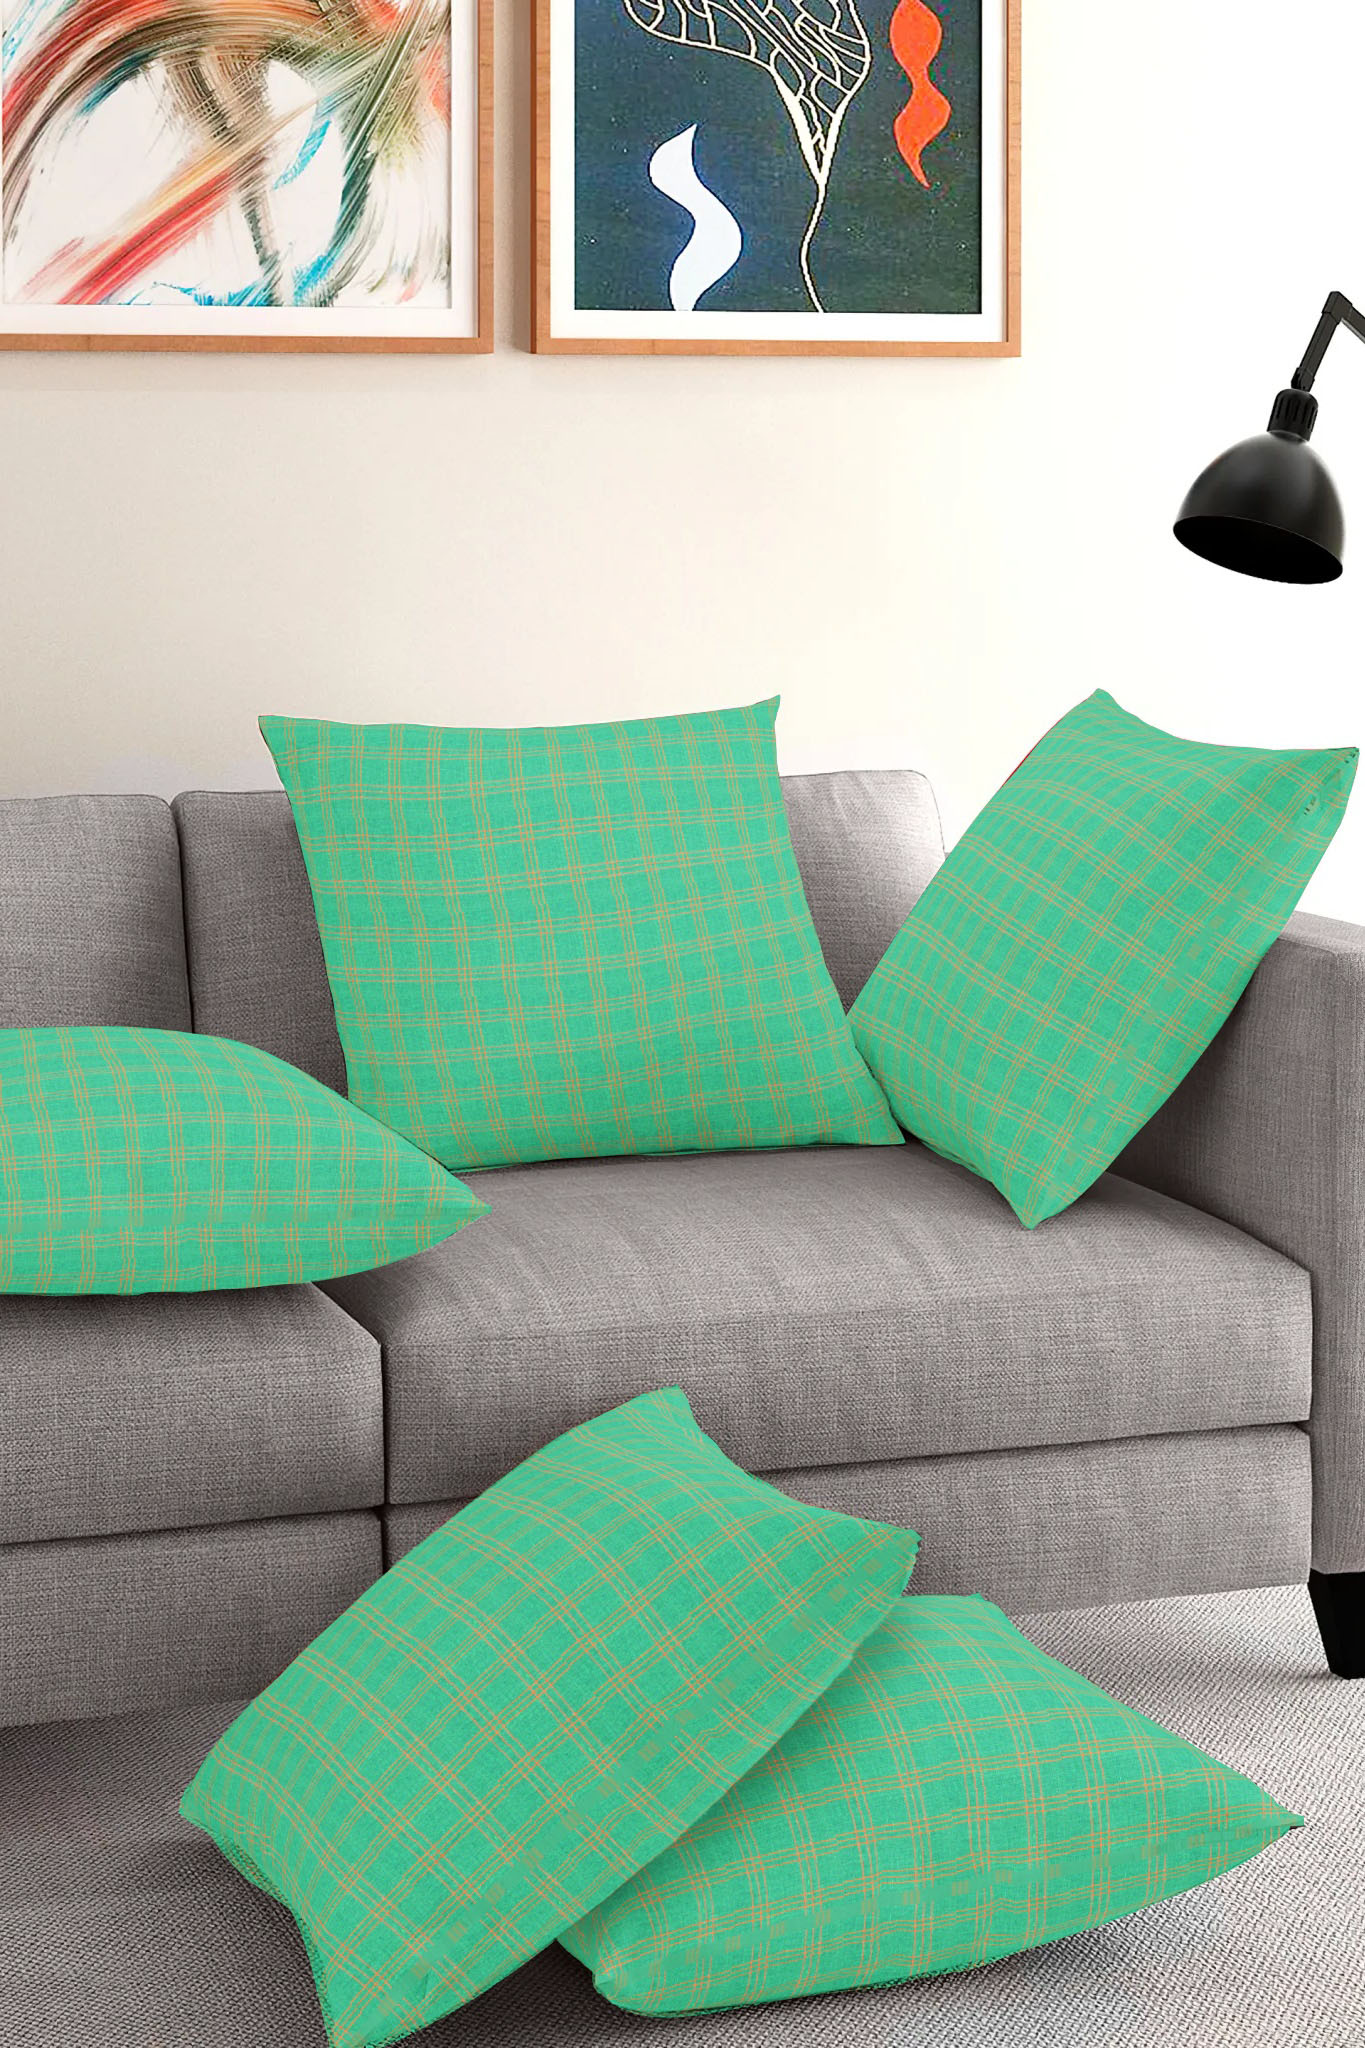 Set of 5-Green Yellow Cotton Cushion Cover-35397-16x16 Inches